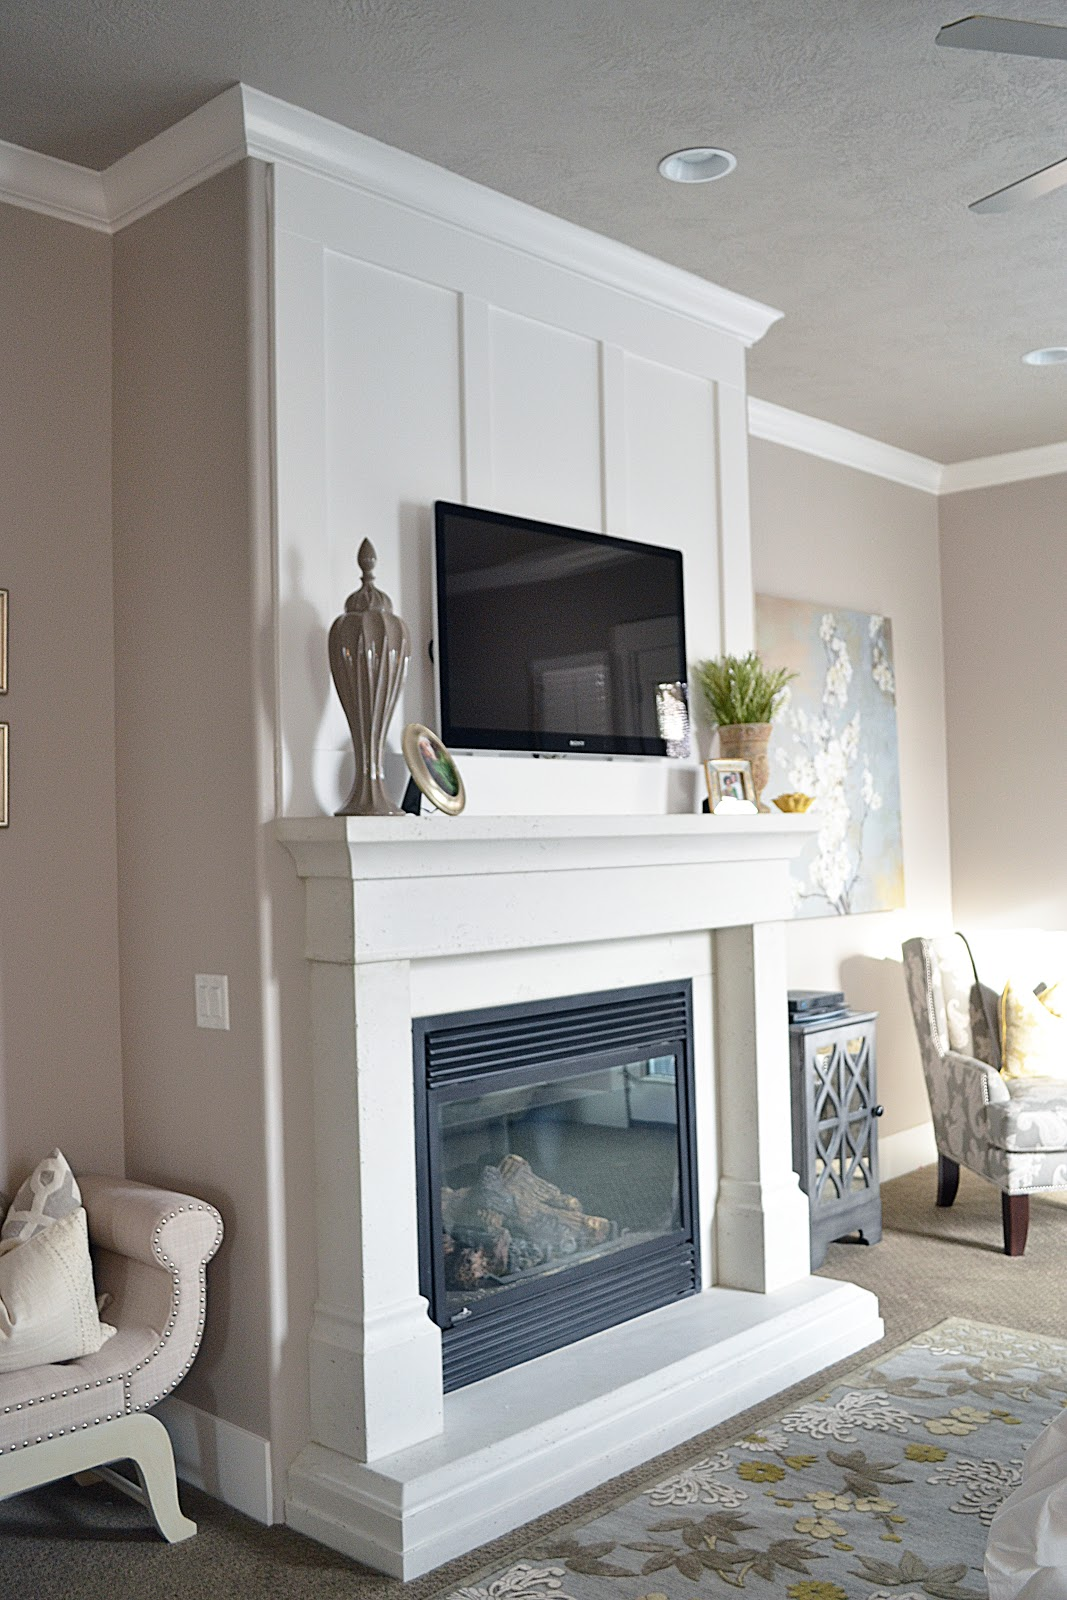 Sita Montgomery Interiors: Master Bedroom Fireplace ...